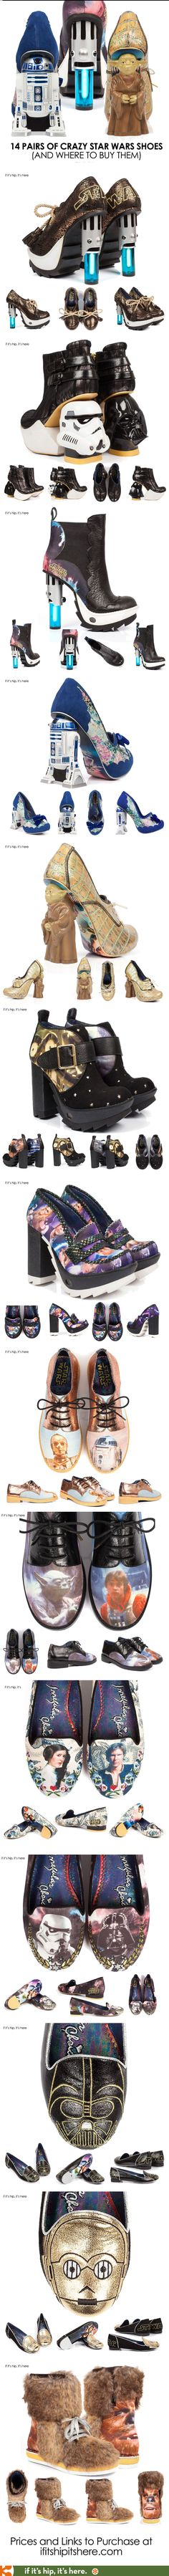 All 14 Crazy Pairs of Star Wars Shoes by Irregular Choice (and where to buy them) - See more at: www.ifitshipitshe...